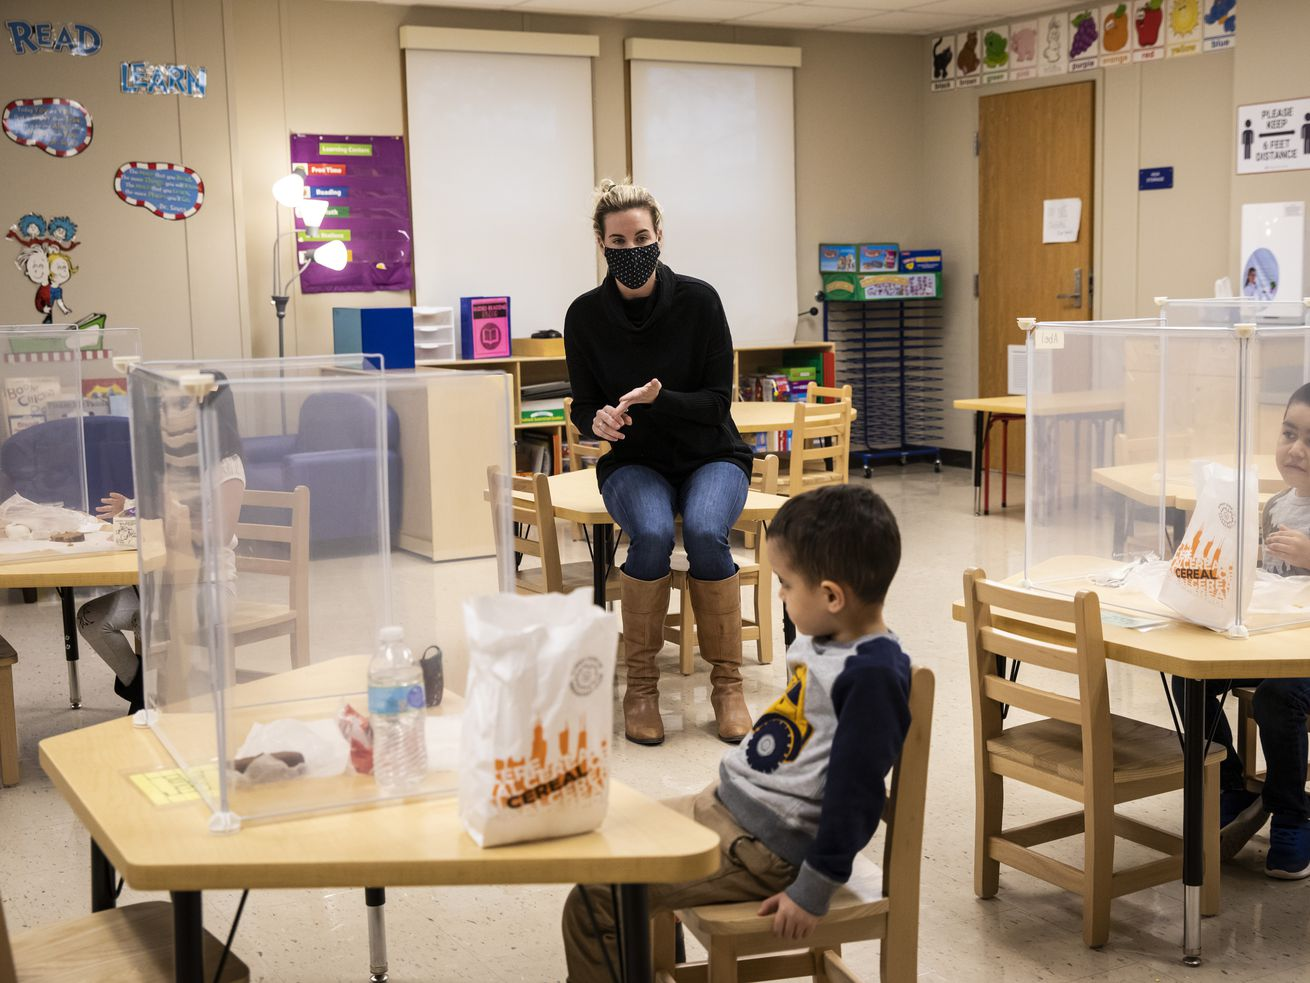 Every CPS student to get $450 for food through federal program that will benefit 1 million Illinois children